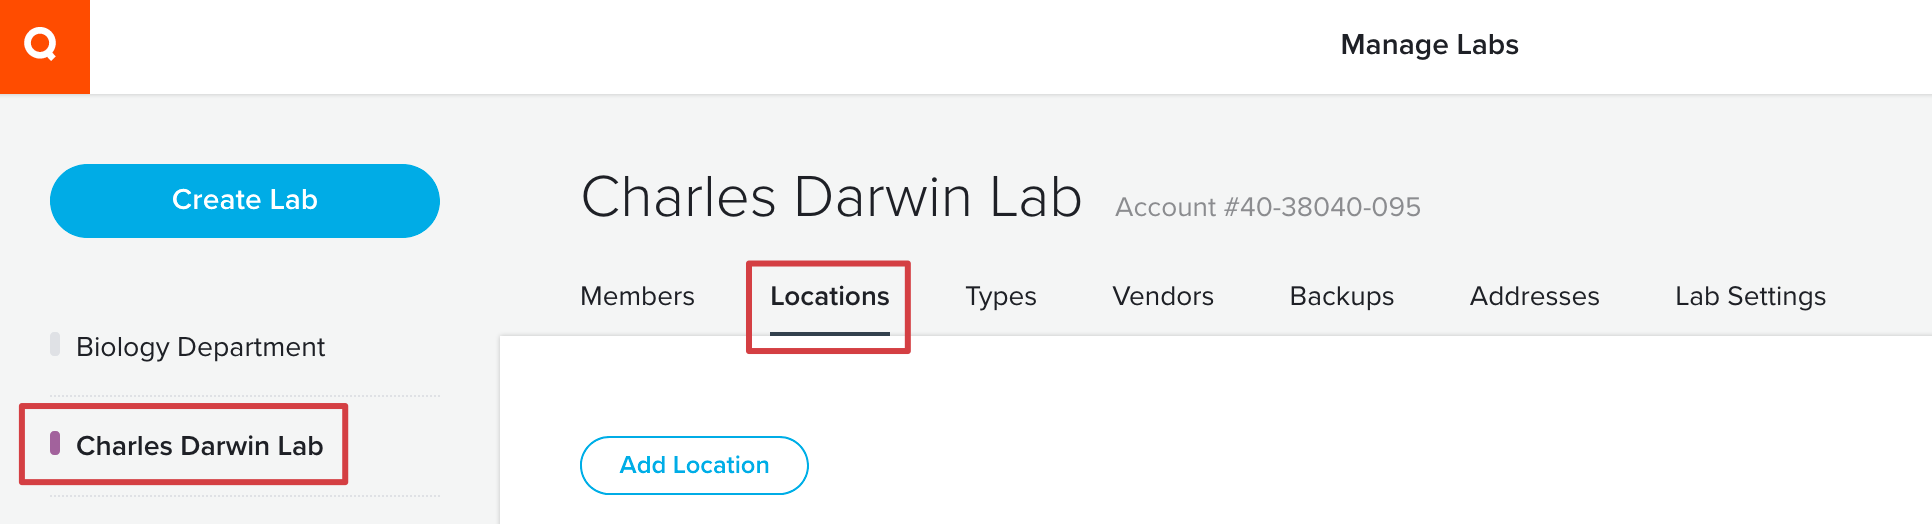 manage_labs_locations.png